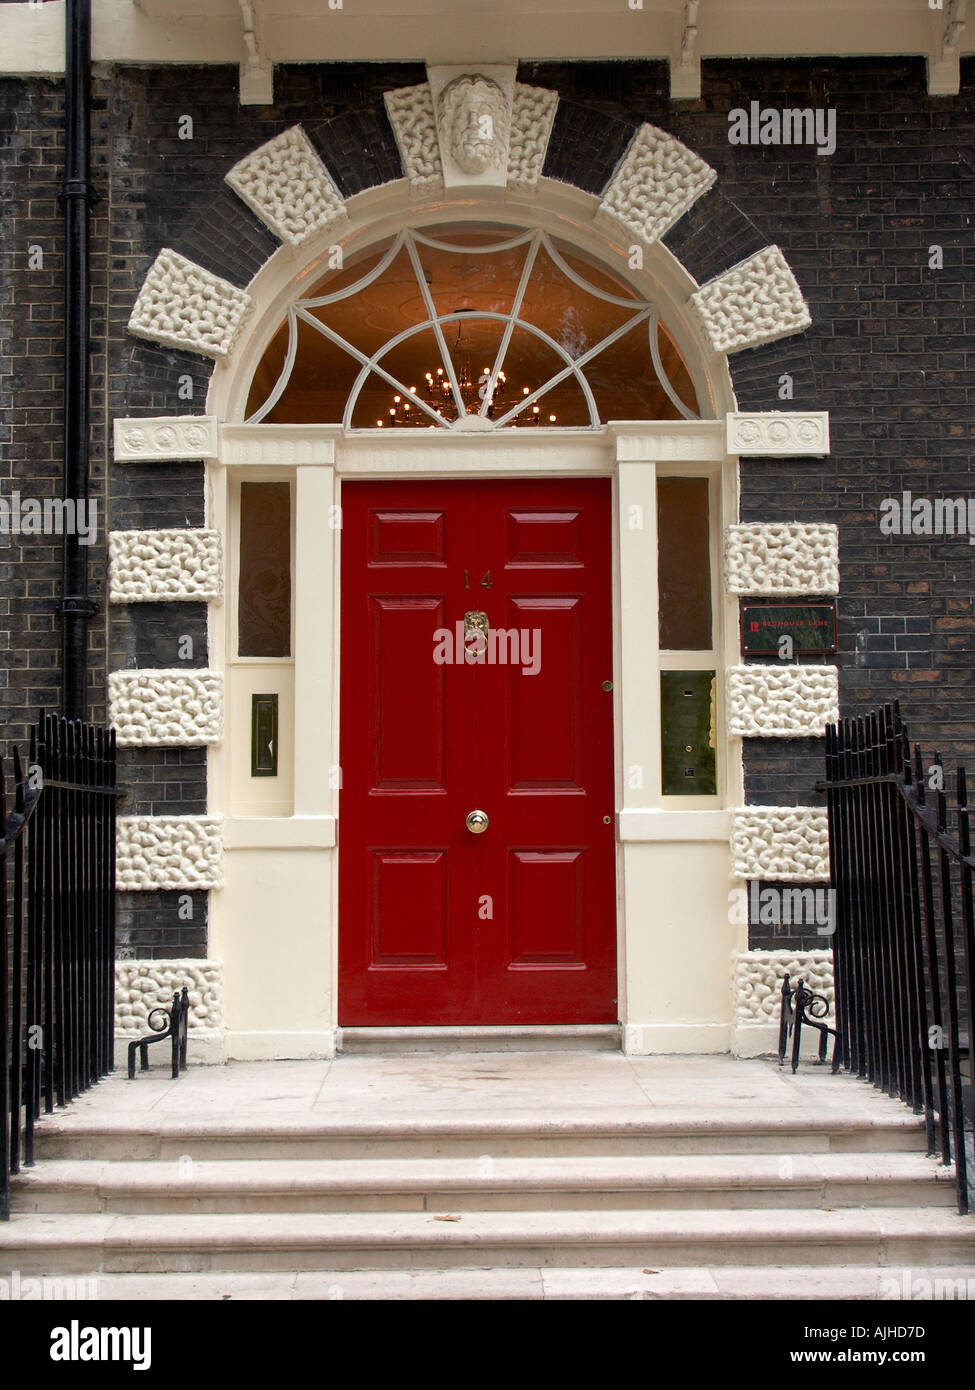 Red Entry Door Of Row House In Bedford Square Borough Of Holborn London  England UK